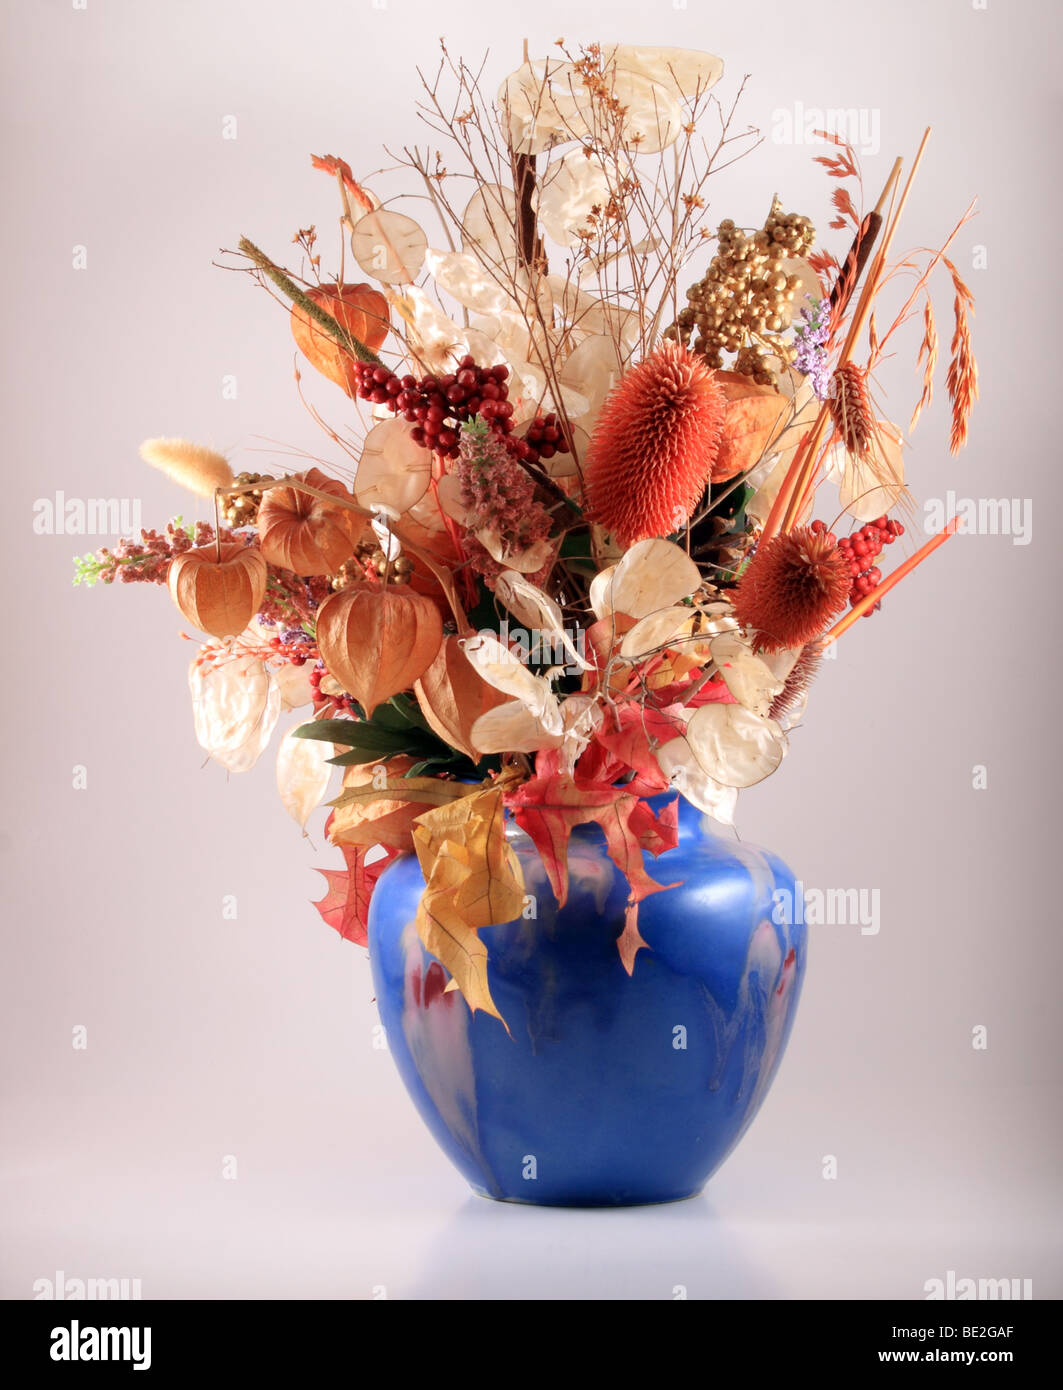 Dried flowers in a blue vase. Stock Photo